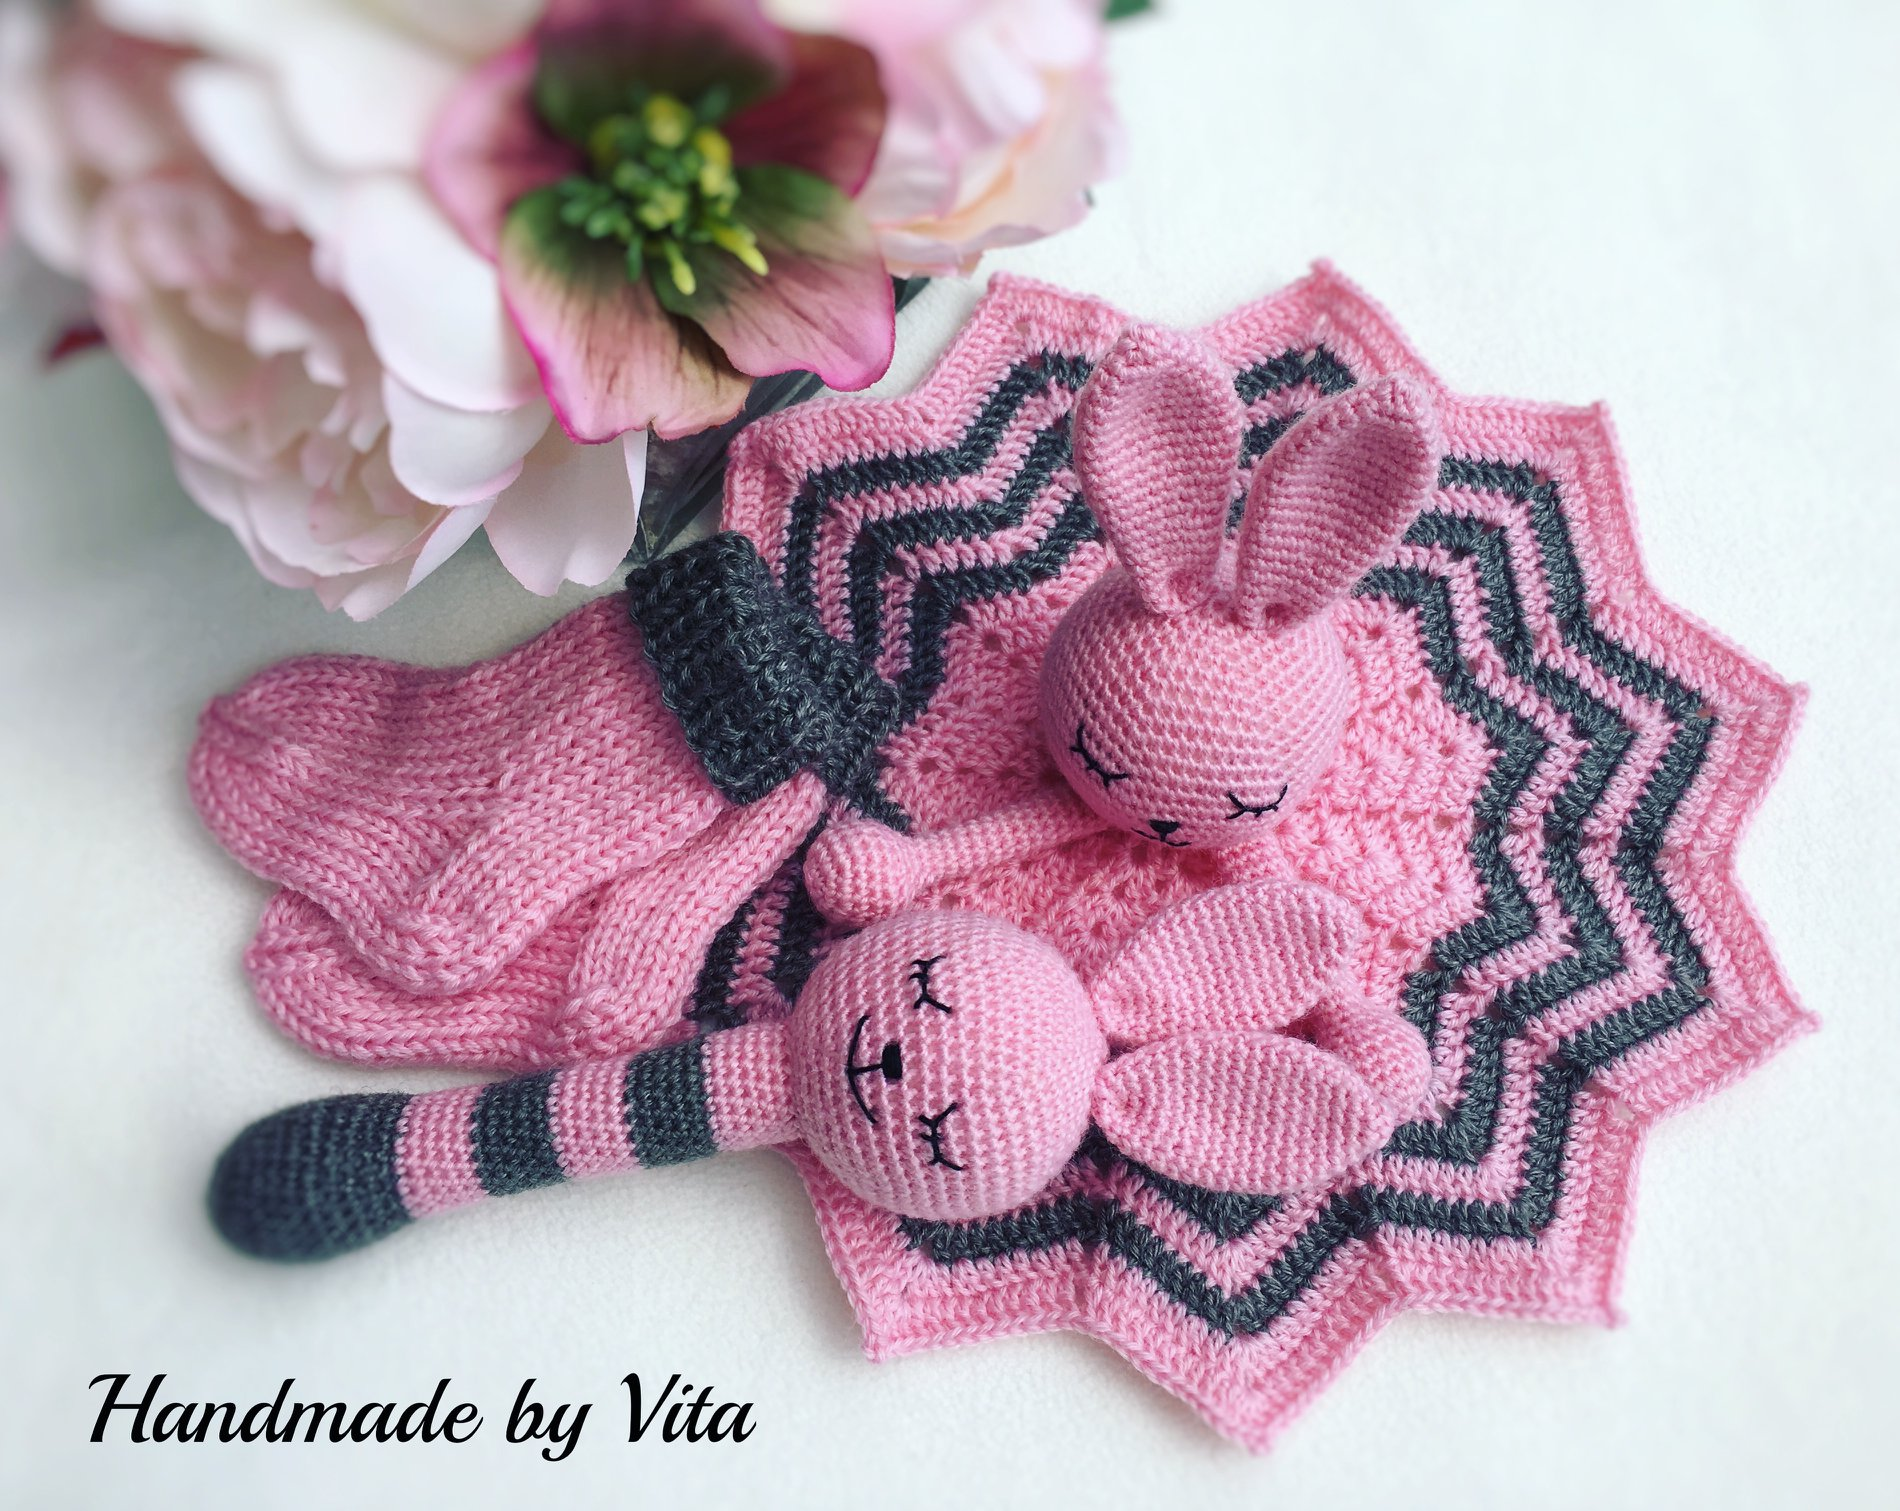 handmade-by-vita-baby-set-001